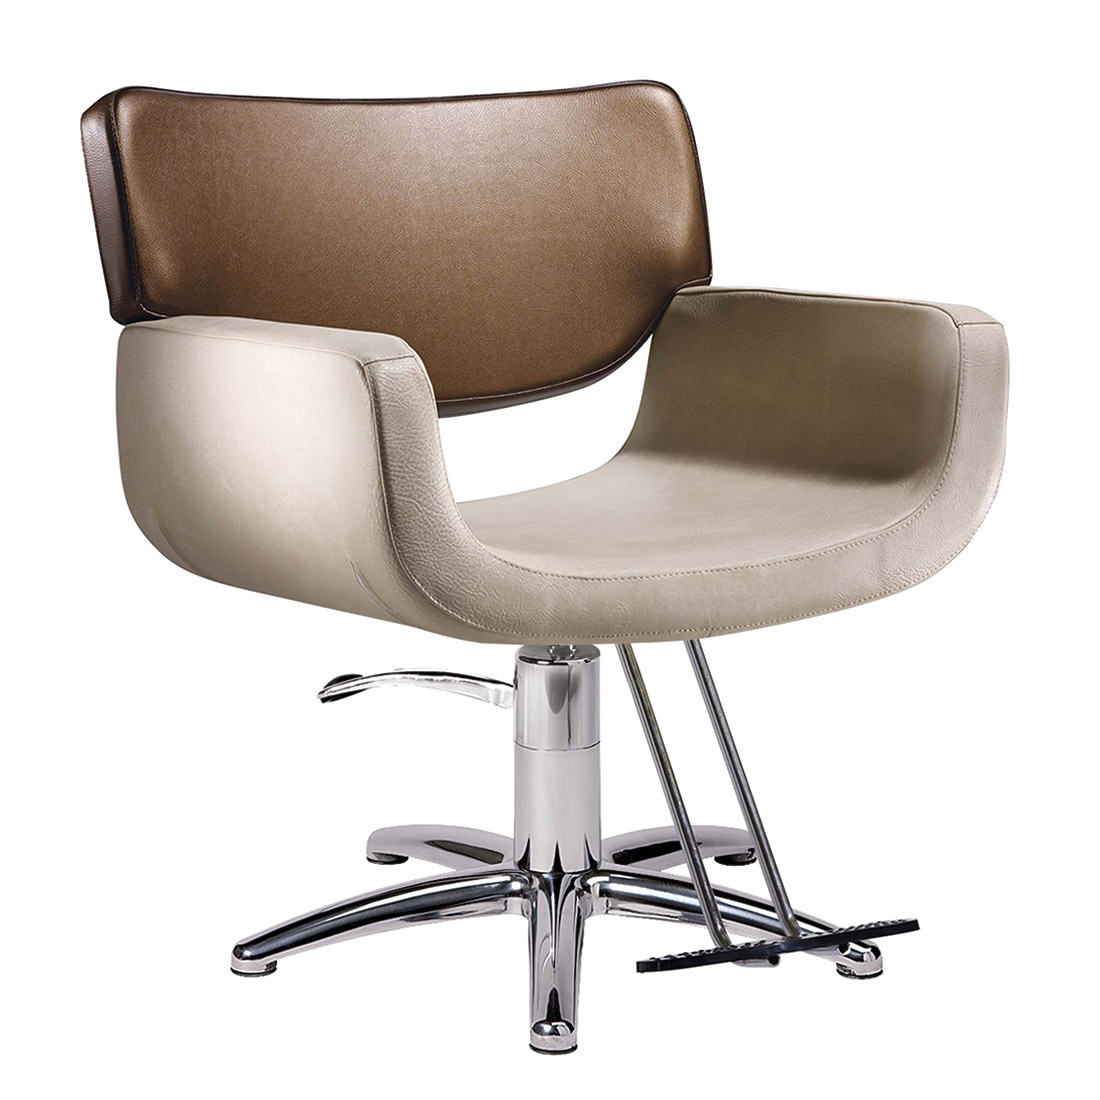 Quadro Hair Salon Chair by Salon Ambience alternative product image 1